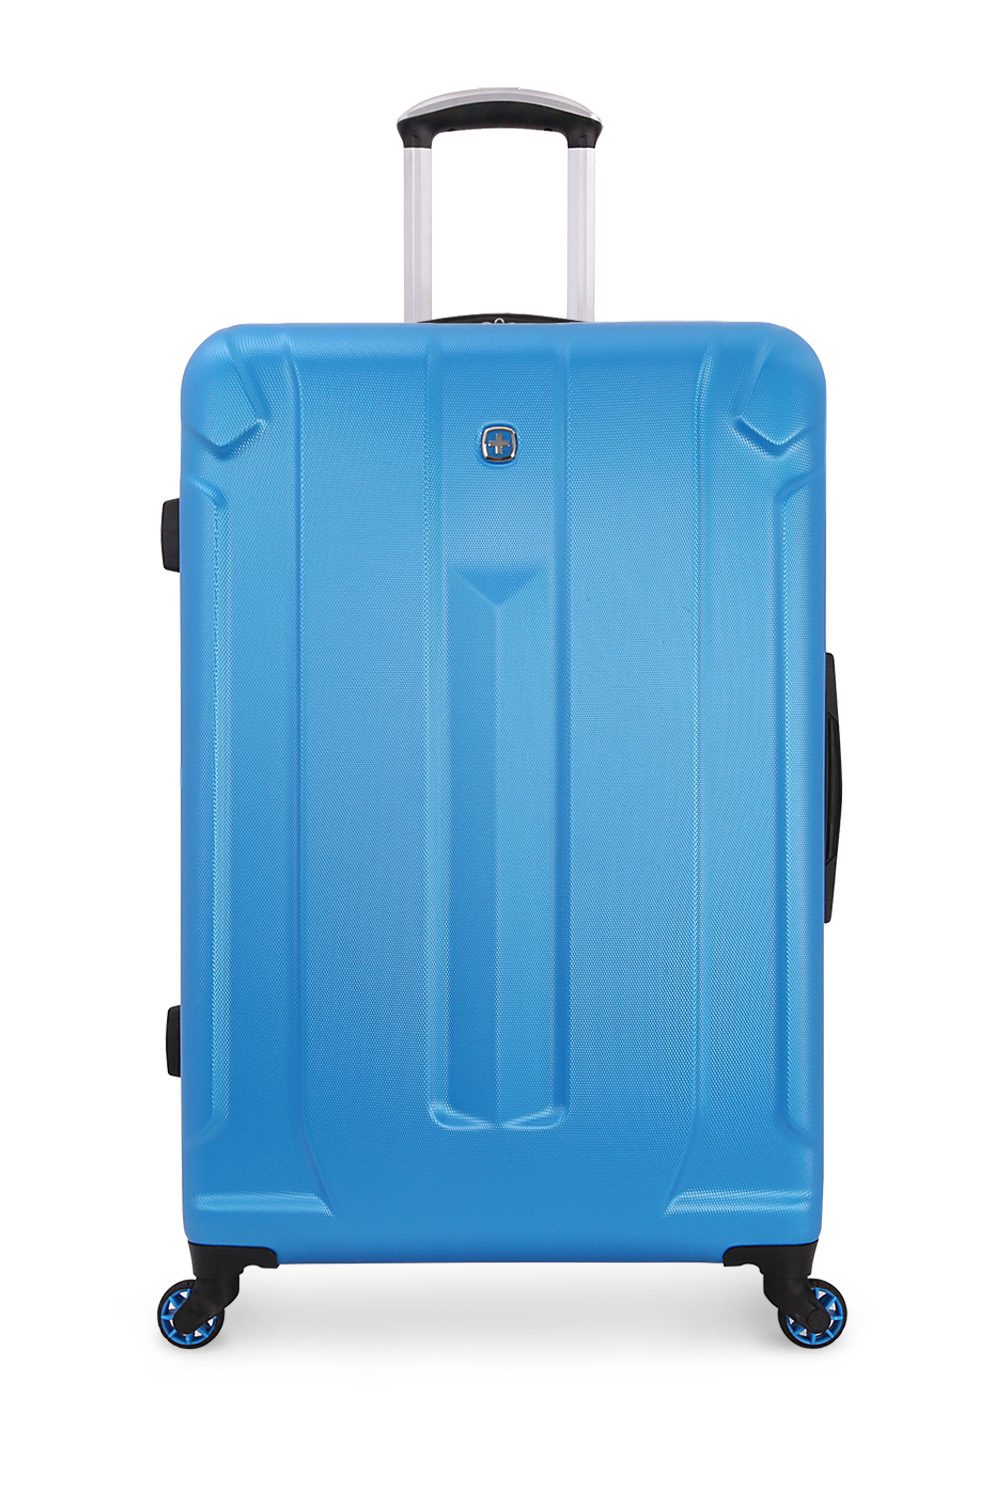 baby-blue-hard-case-shell-swiss-gear-black-friday-luggage-deal